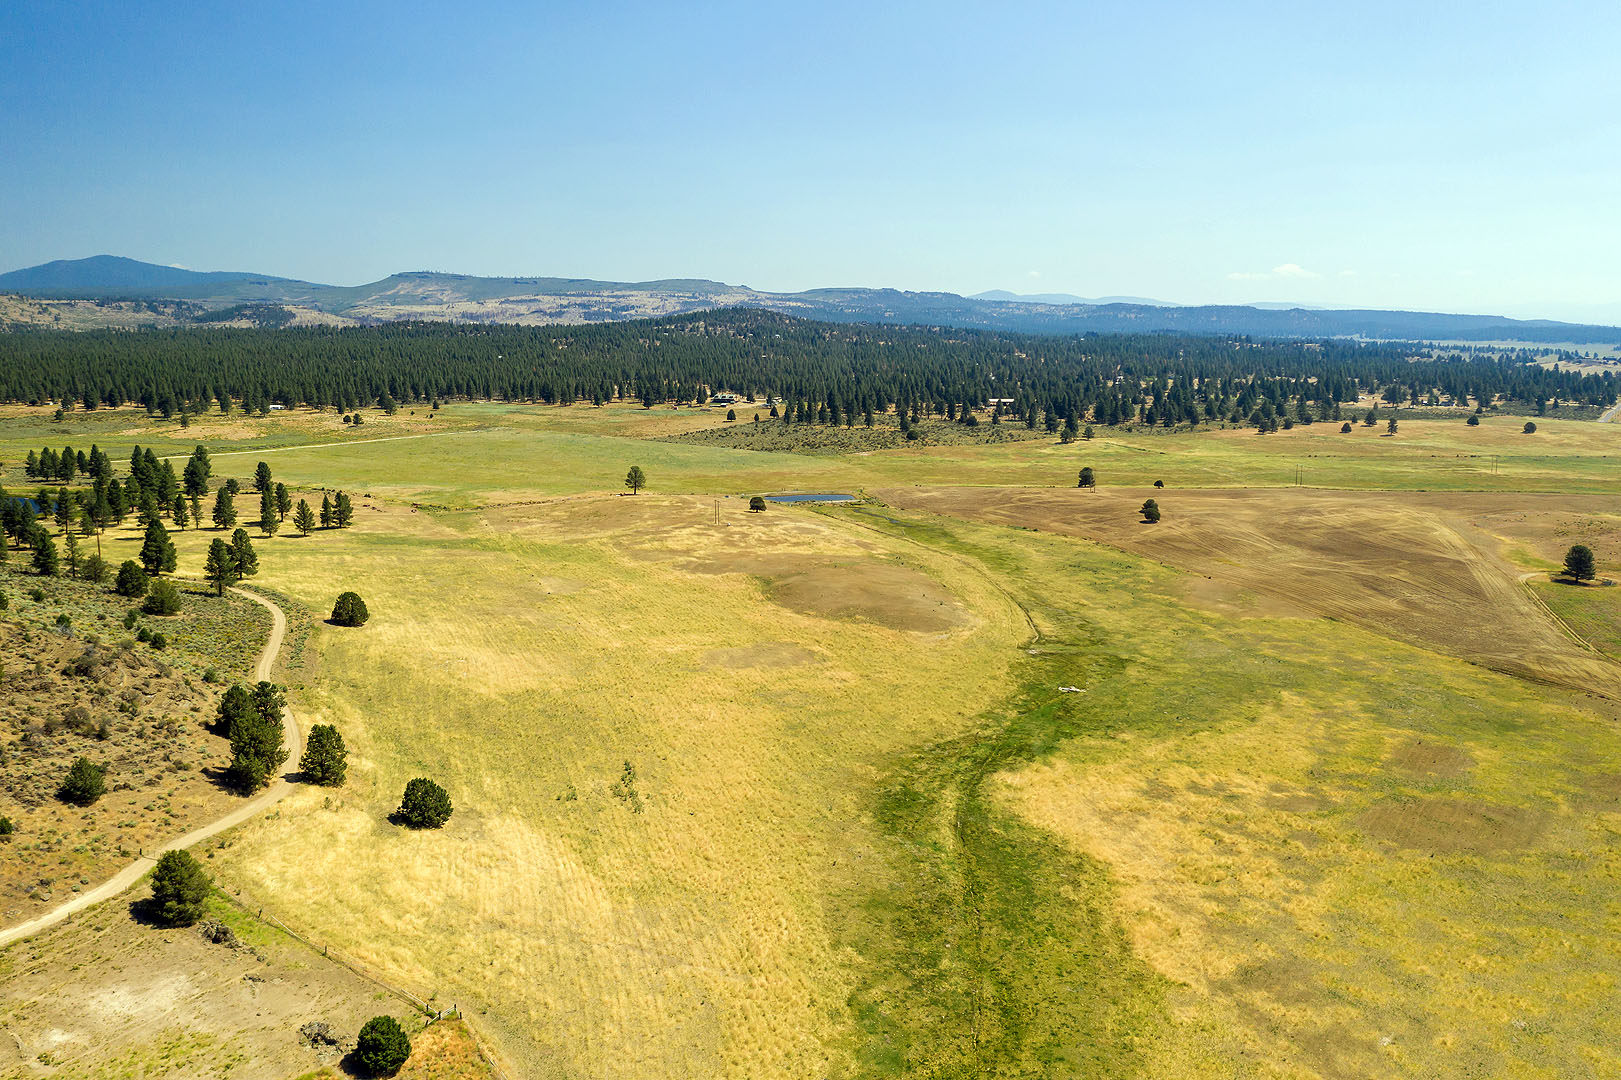 Hay Farming Opportunities in Klamath County